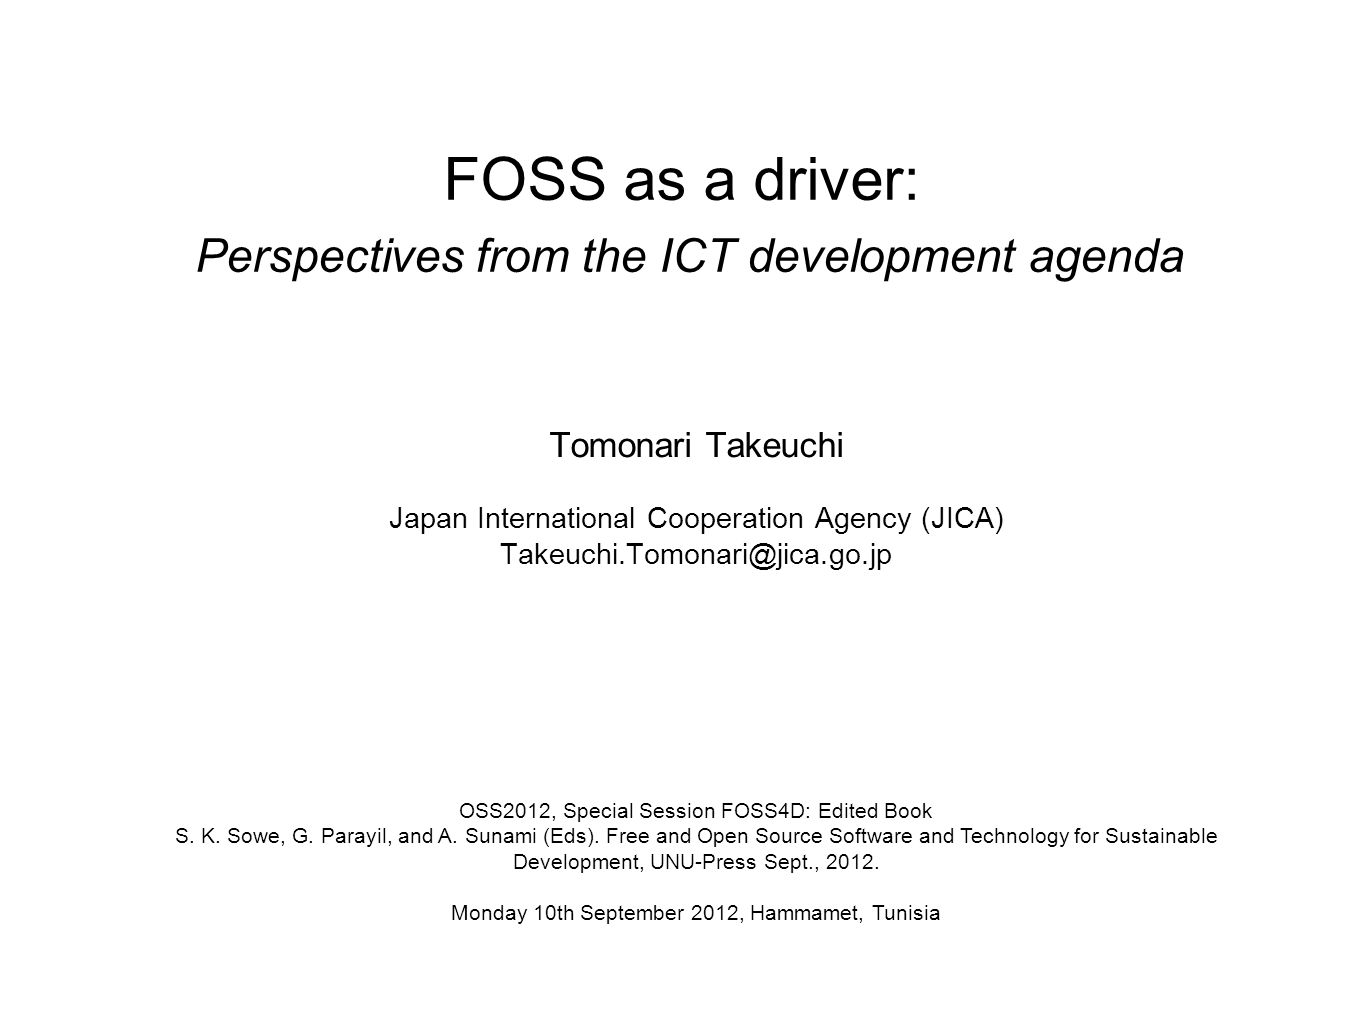 FOSS as a driver: Perspectives from the ICT development agenda Tomonari Takeuchi Japan International Cooperation Agency (JICA) OSS2012, Special Session FOSS4D: Edited Book S.